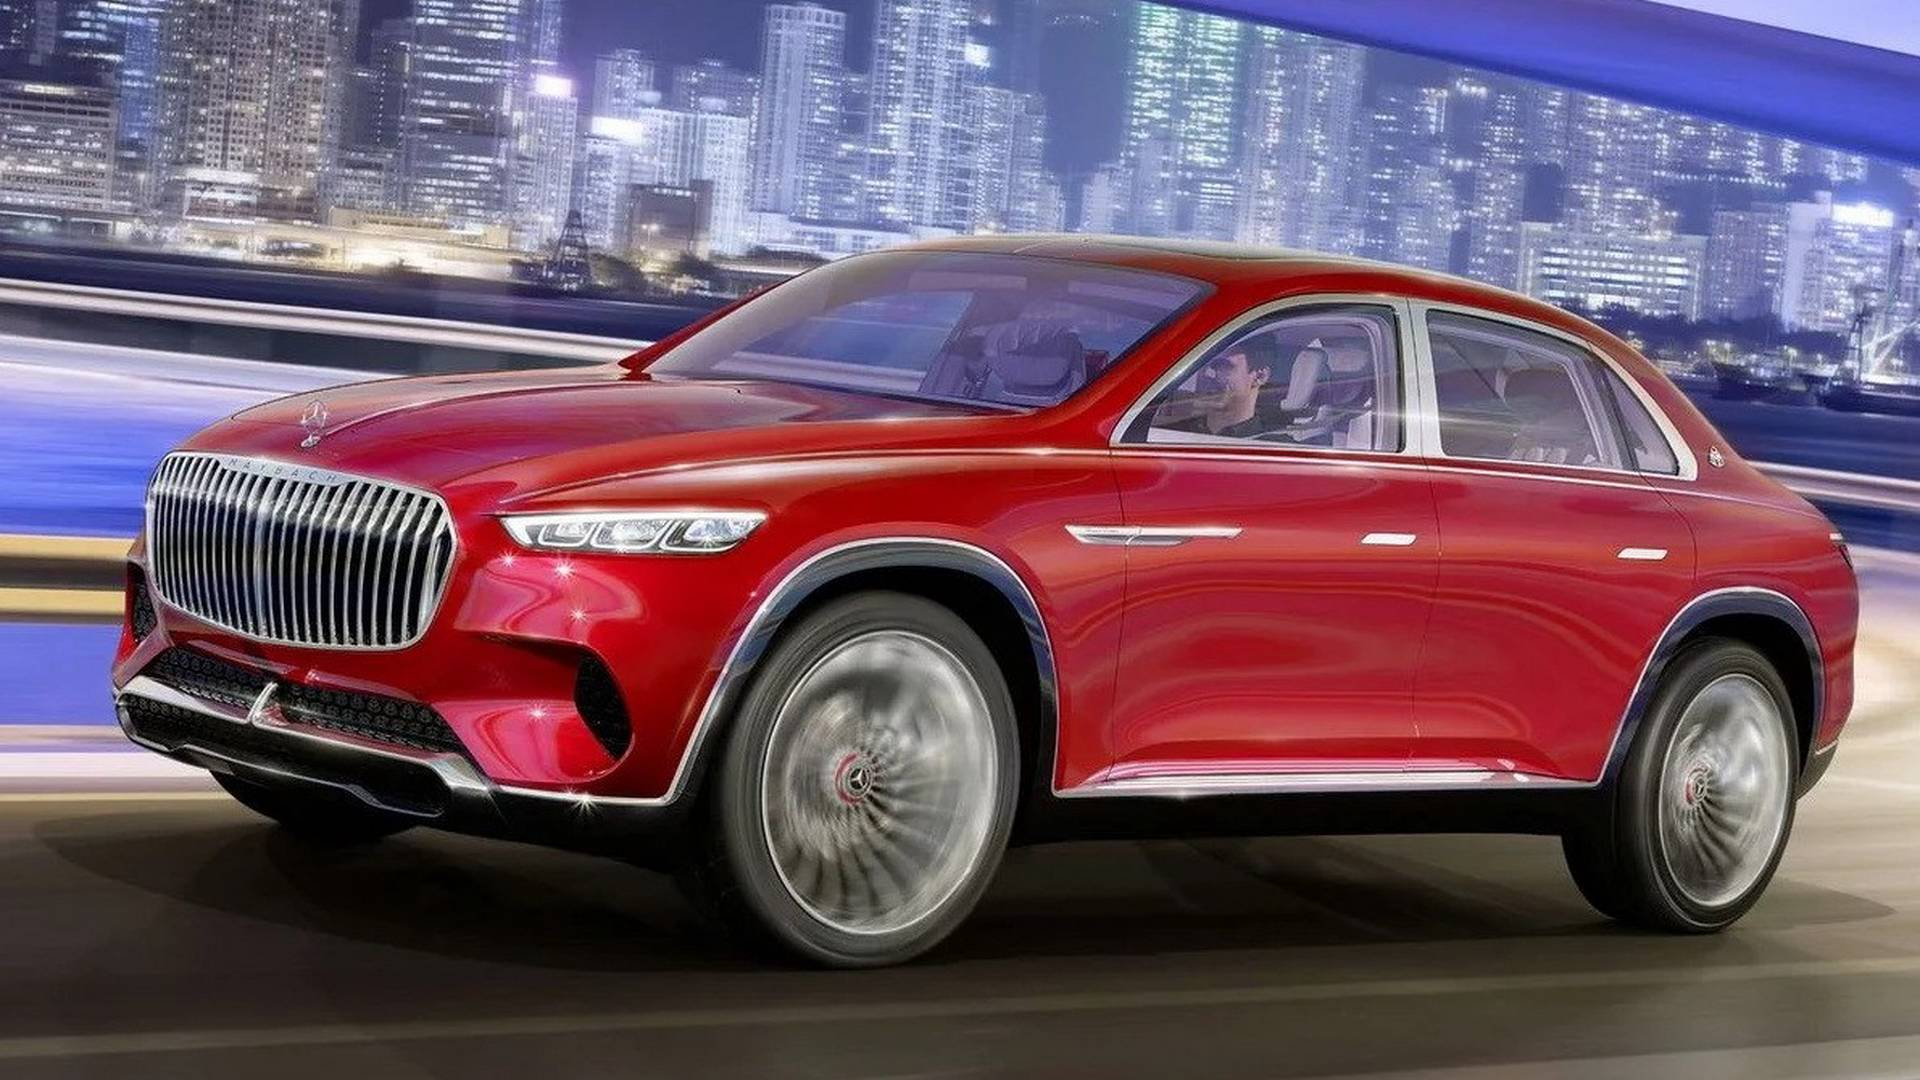 vision-mercedes-maybach-ultimate-luxury-leaked-official-image (1)